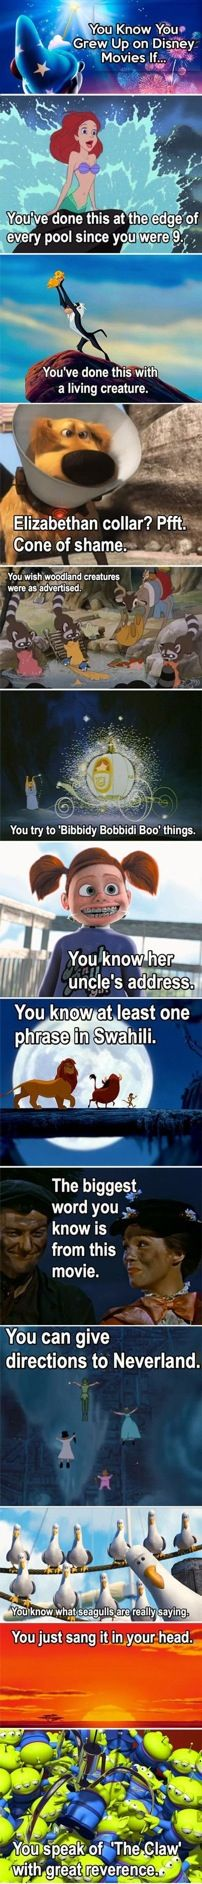 lol I like the u know her uncles address the best. I also rly like the u just sang it in ur head :D